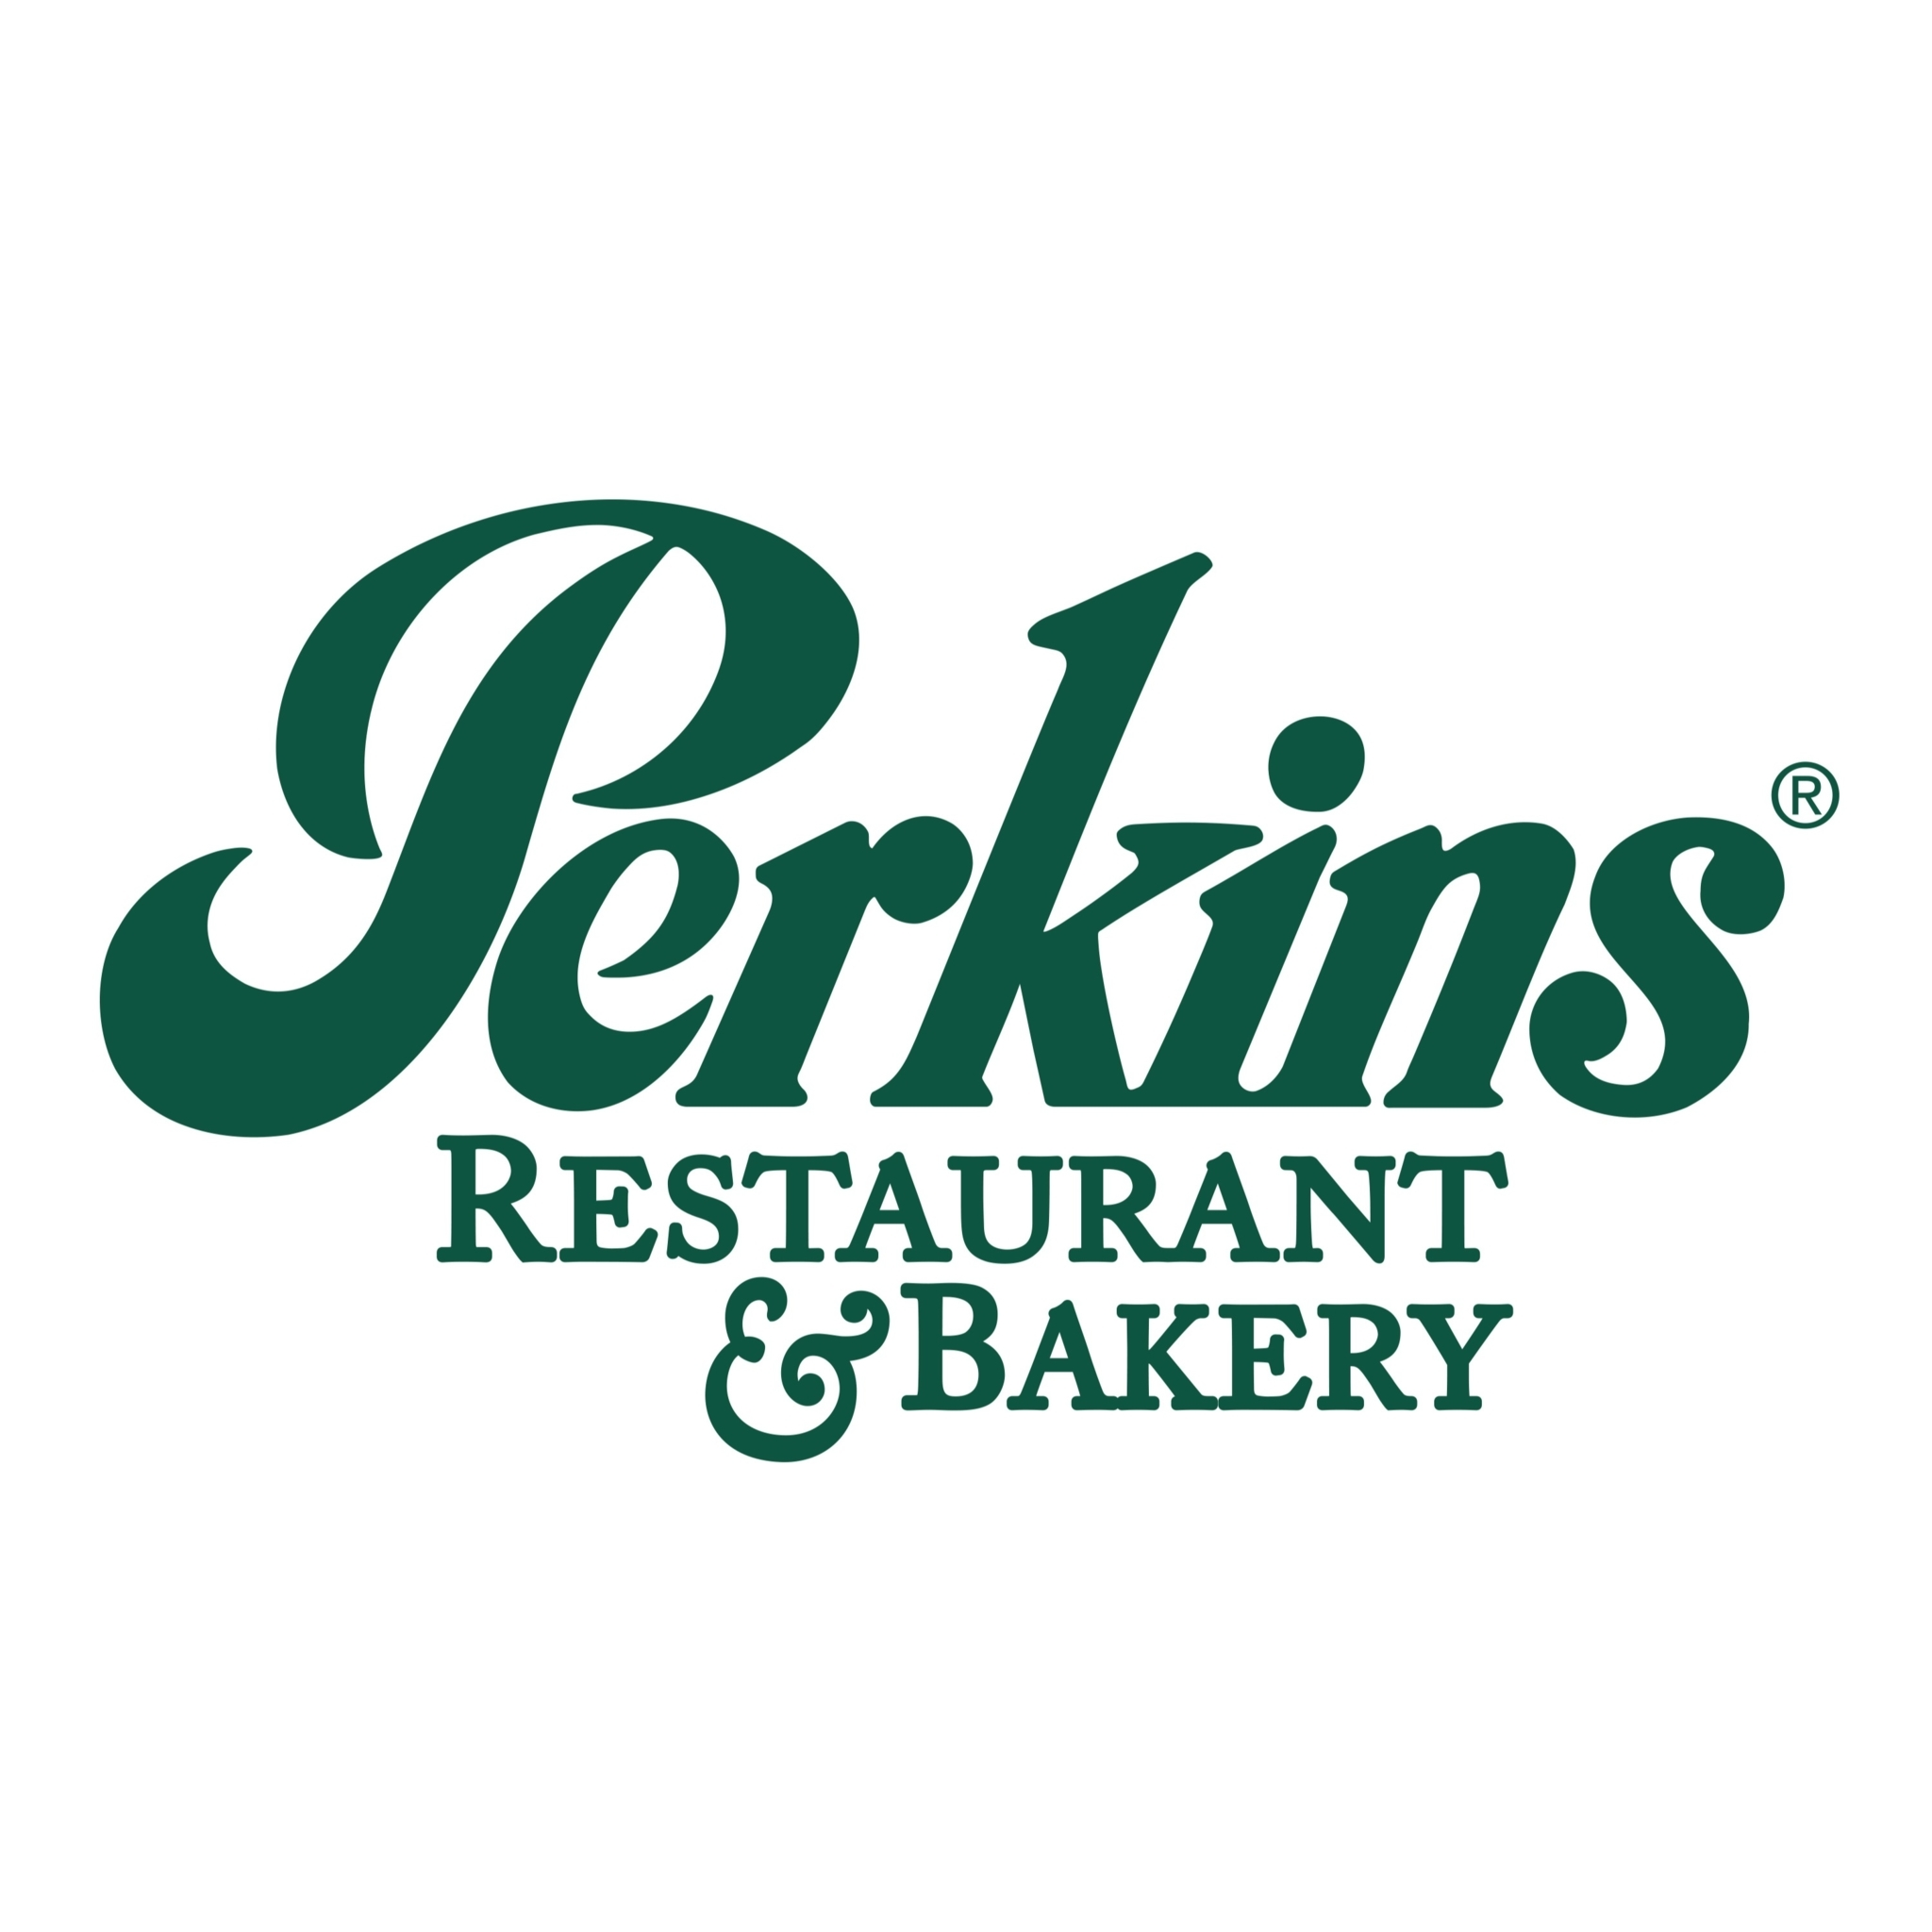 Perkins Restaurant & Bakery - Restaurants